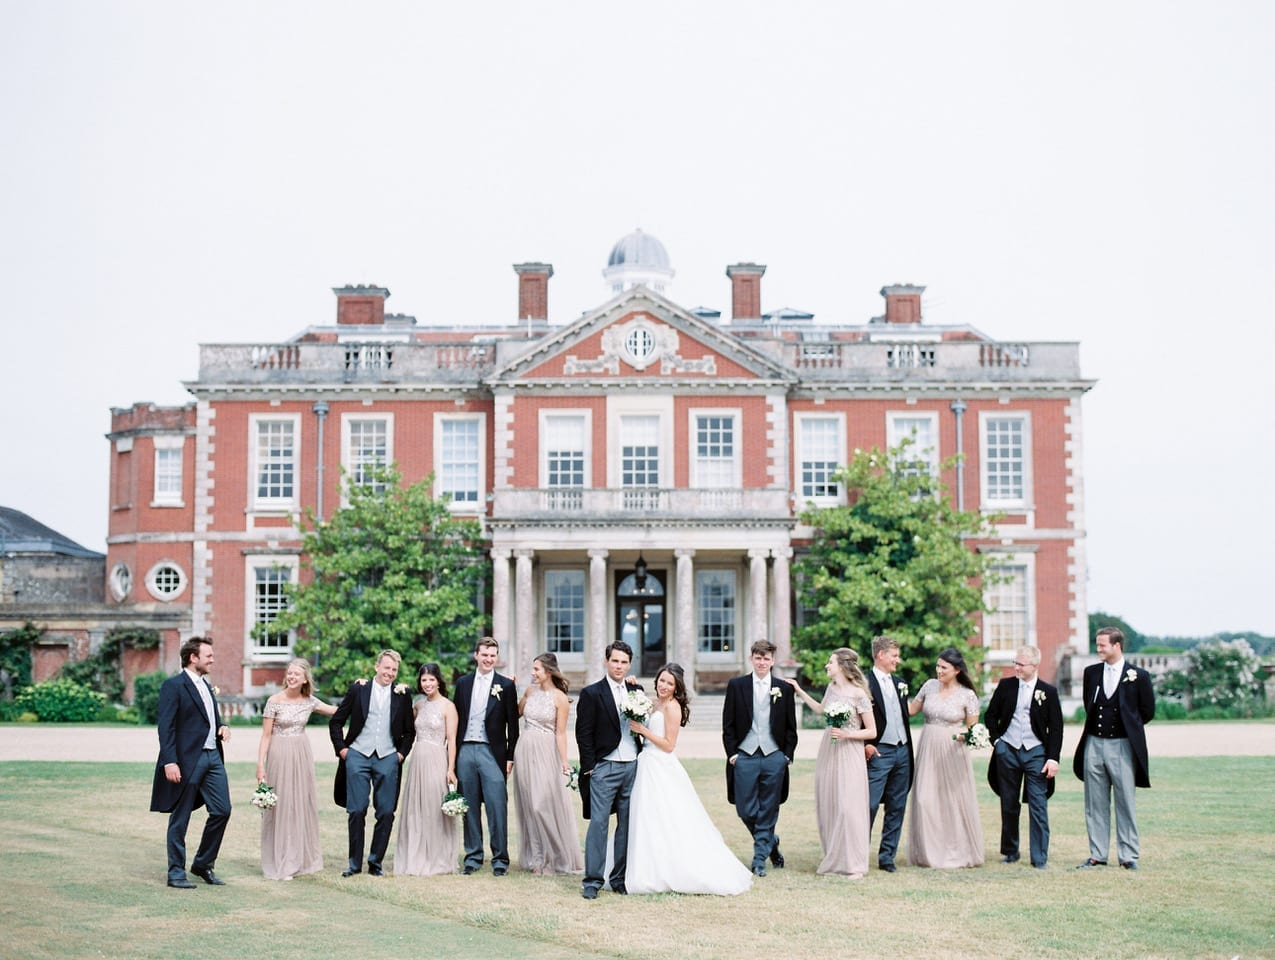 Group wedding photo in front of house